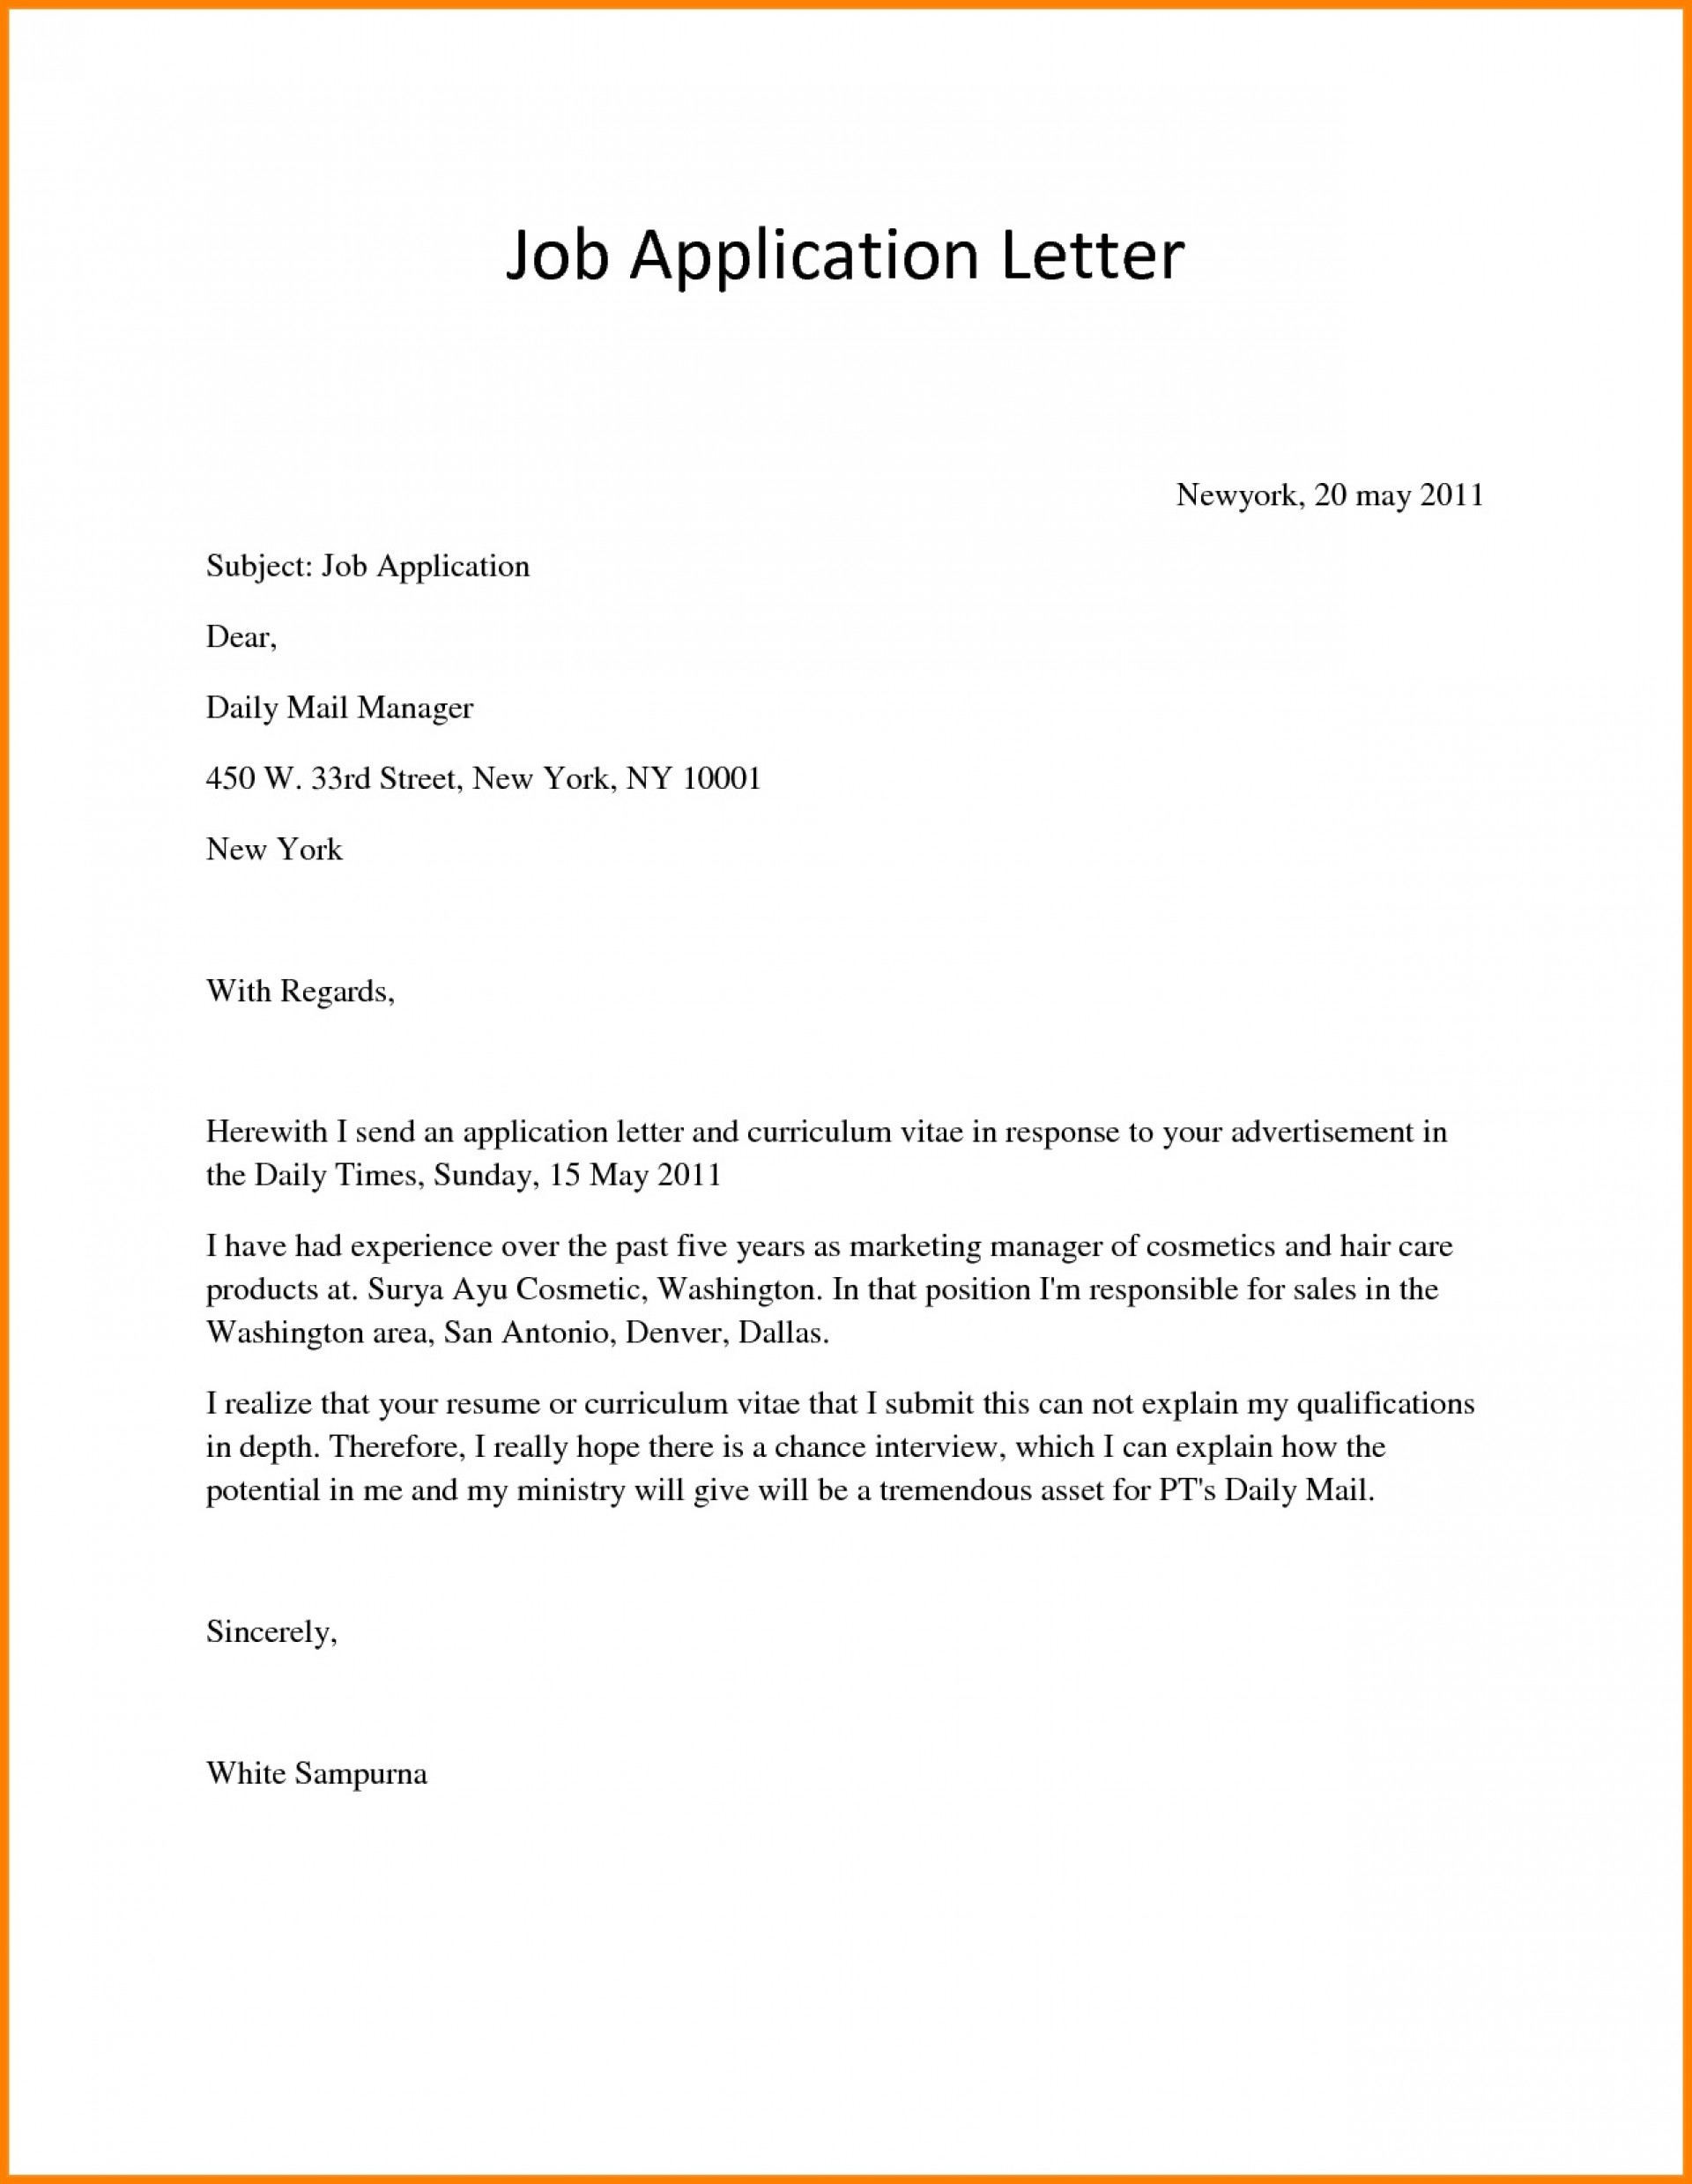 Application For Employment Template Job Letter  Free Sample Pdf1920